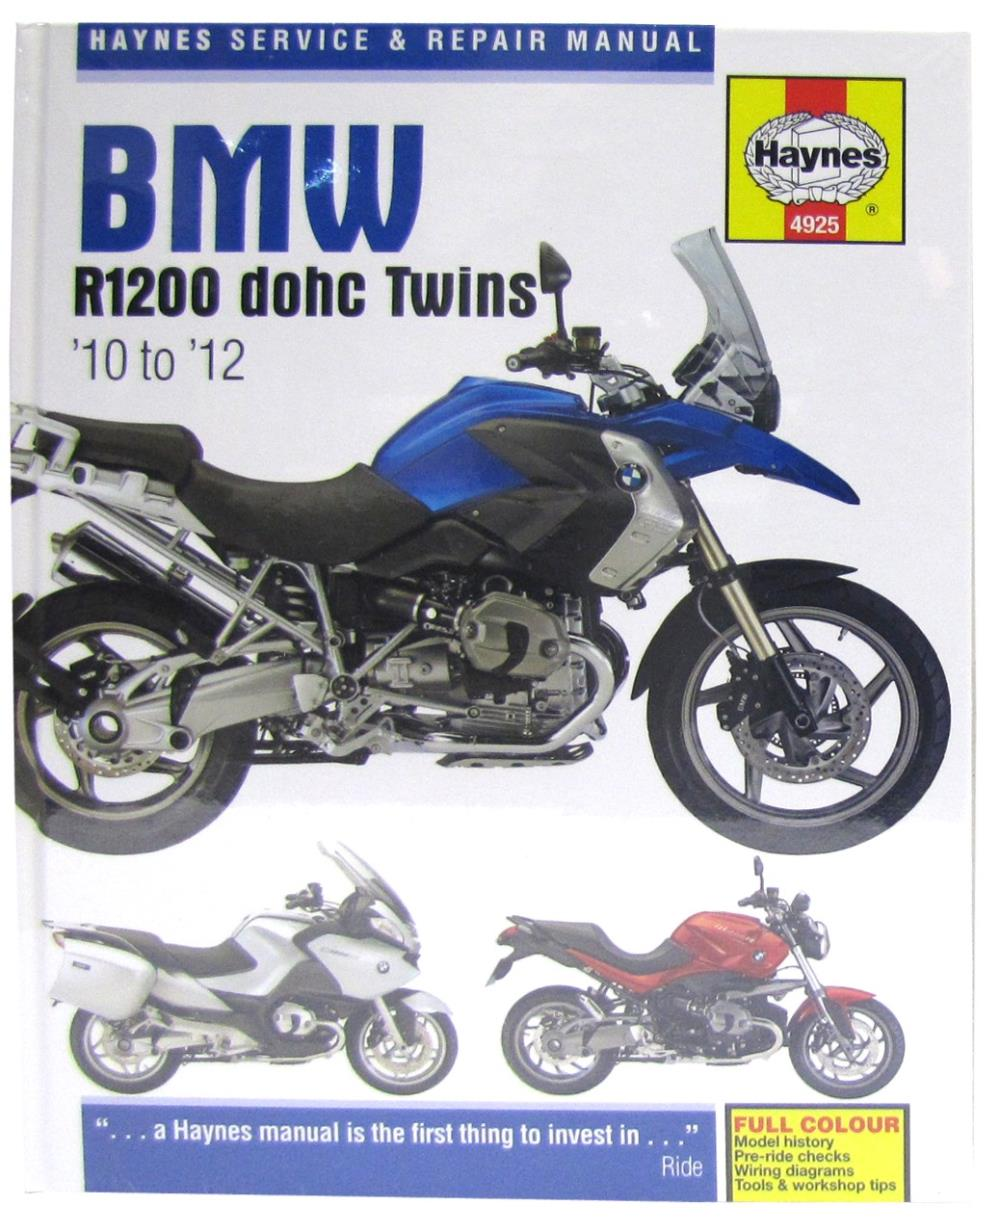 manual haynes for 2012 bmw r 1200 gs adventure ebay rh ebay co uk bmw r 1200 gs maintenance manual bmw r1200gs service manual pdf